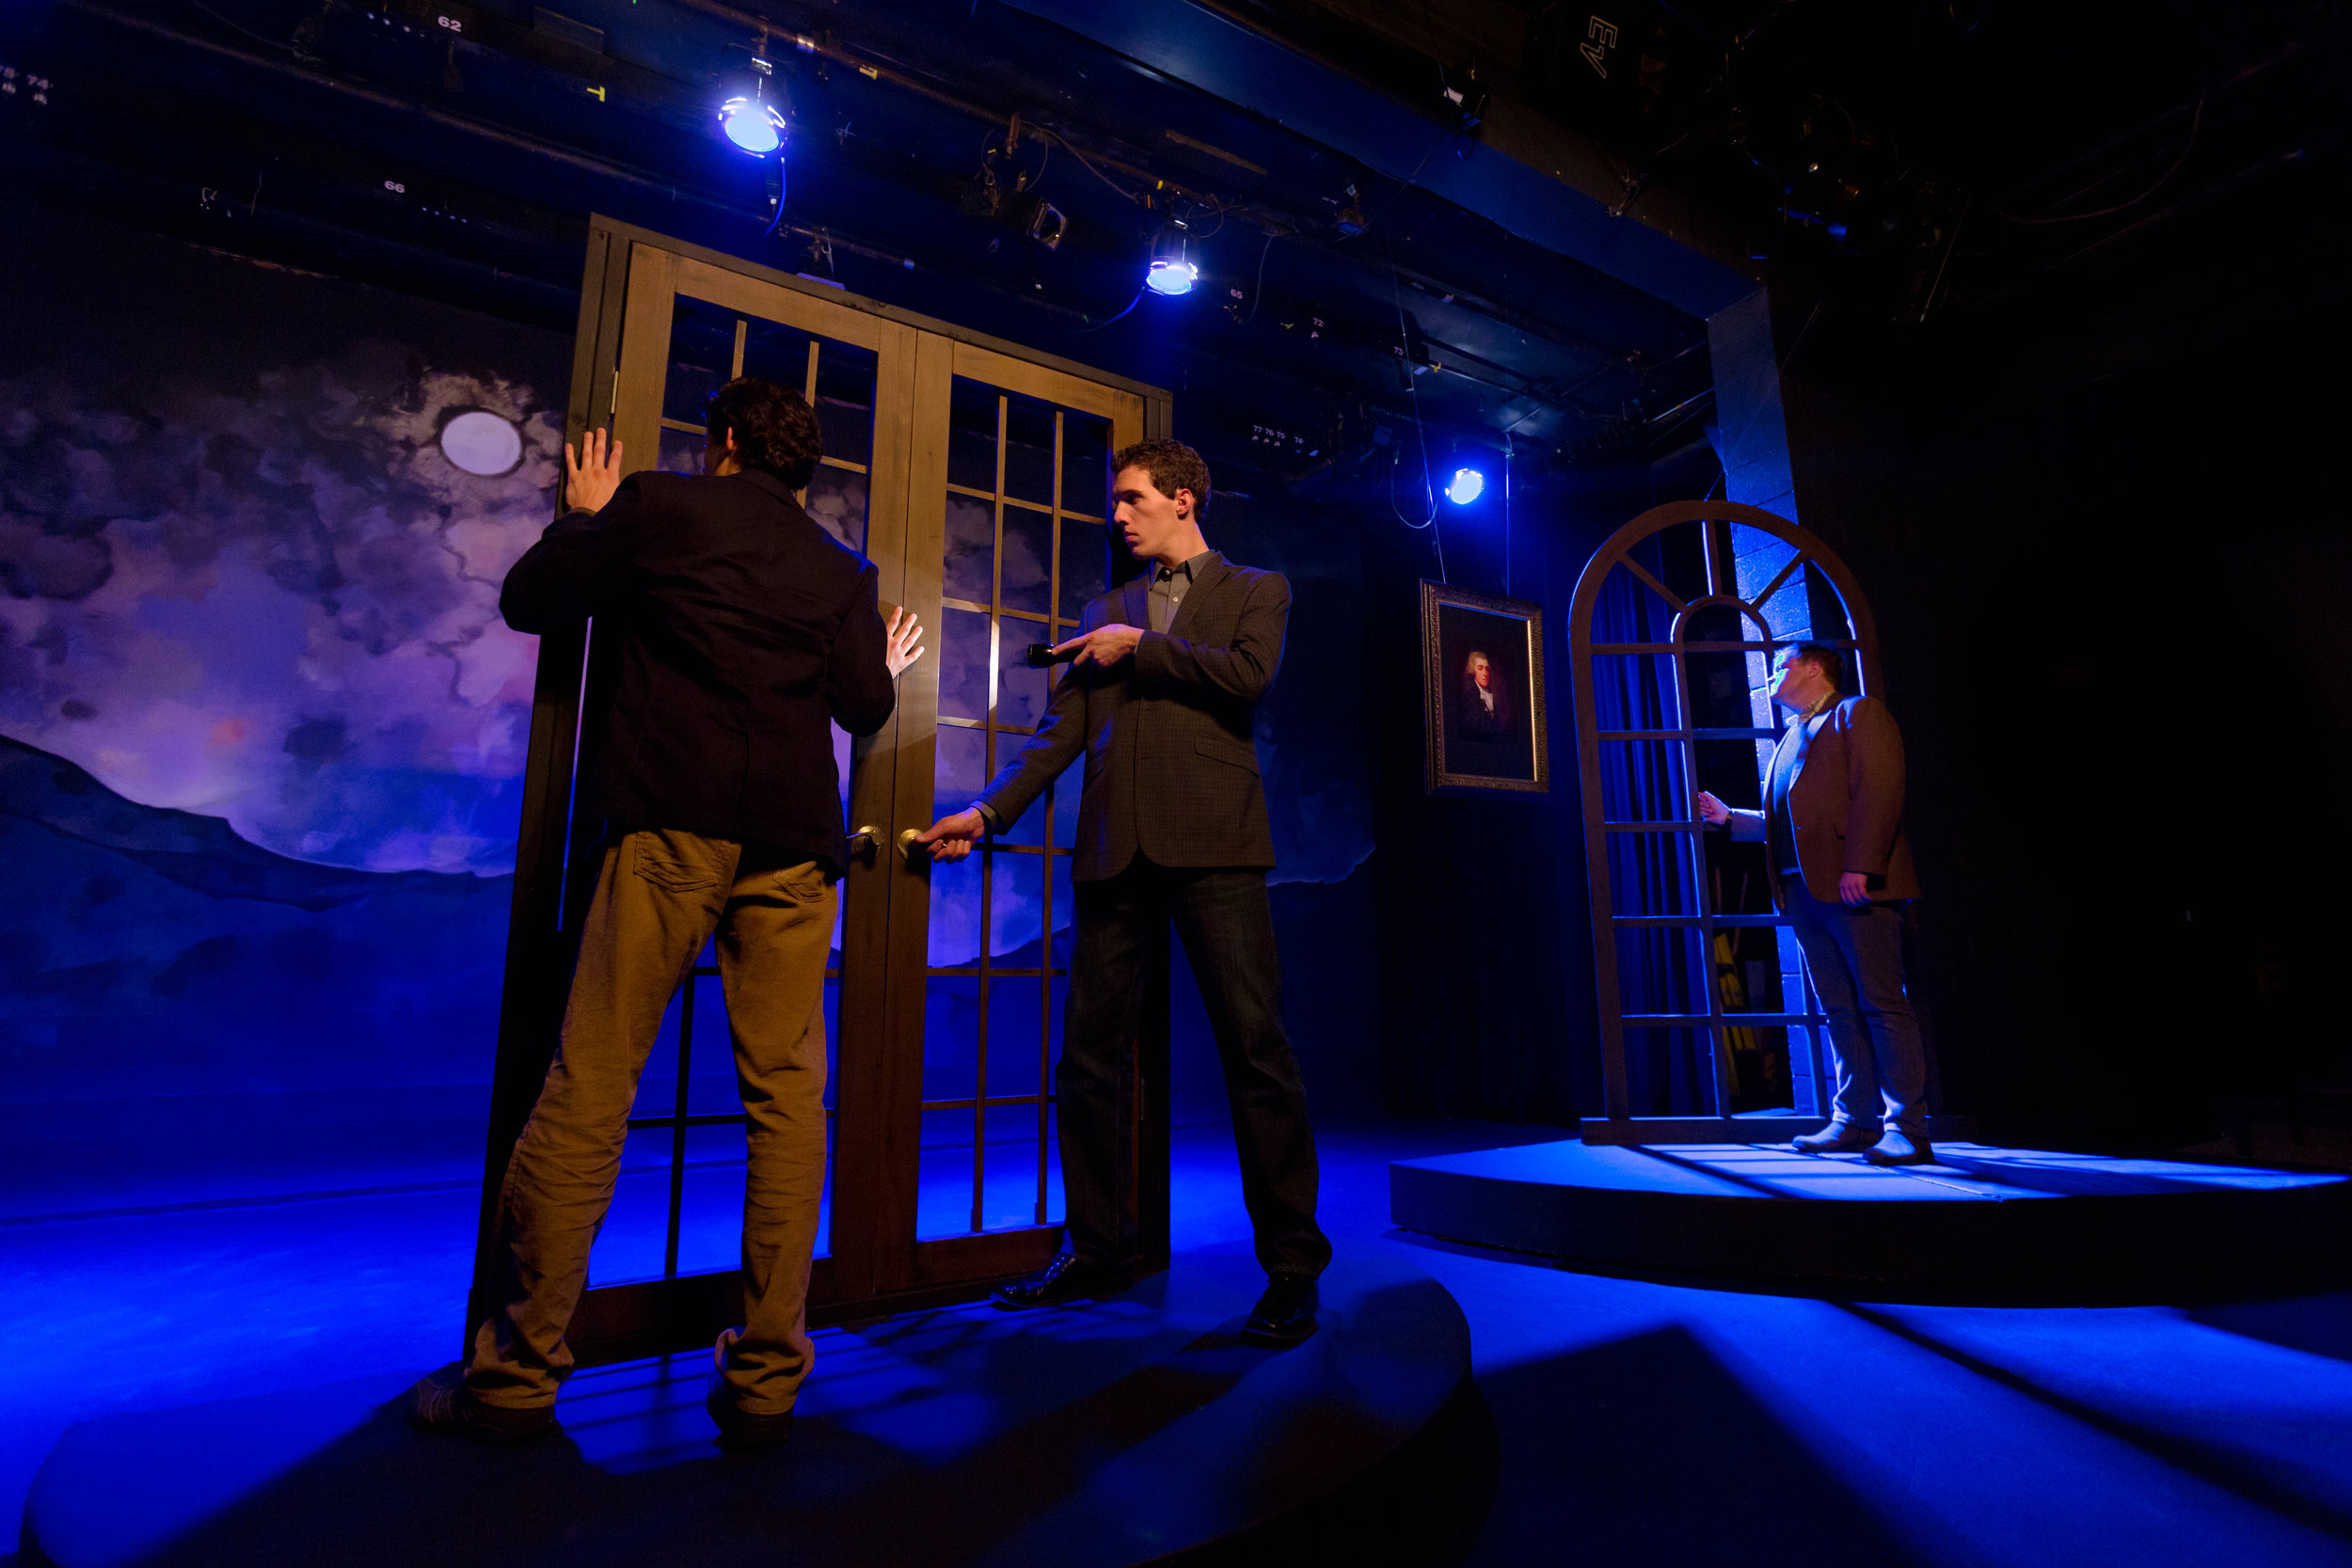 The Hound of Baskervilles adapted by Tim Kelley